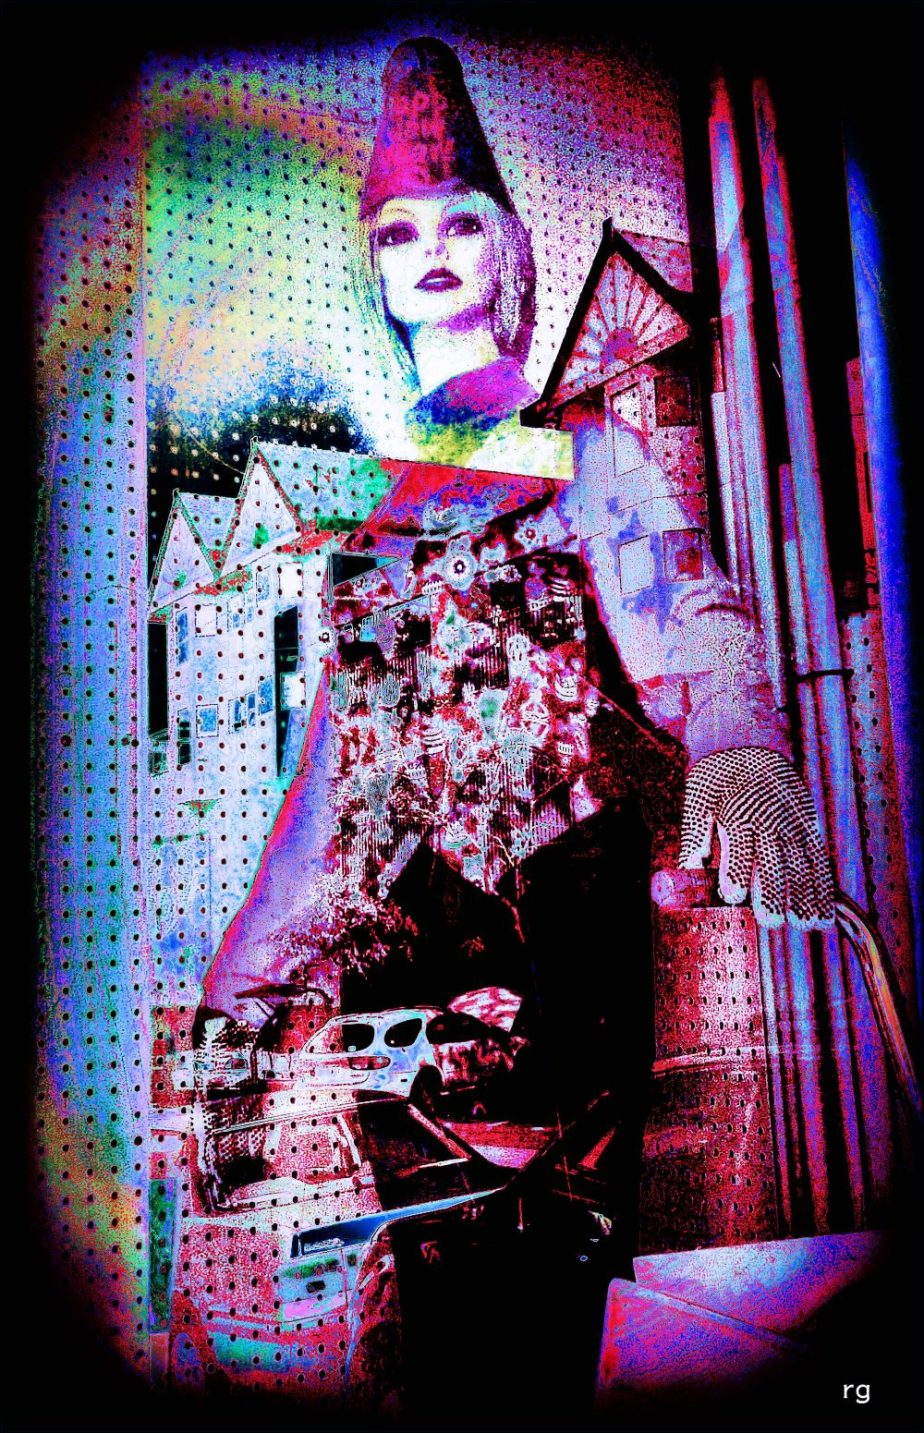 Photo-processed Illustration based on a 2011 Blackberry shot of a mannequin in the window of a cleaning supplies shop in the Mission District of San Francisco.